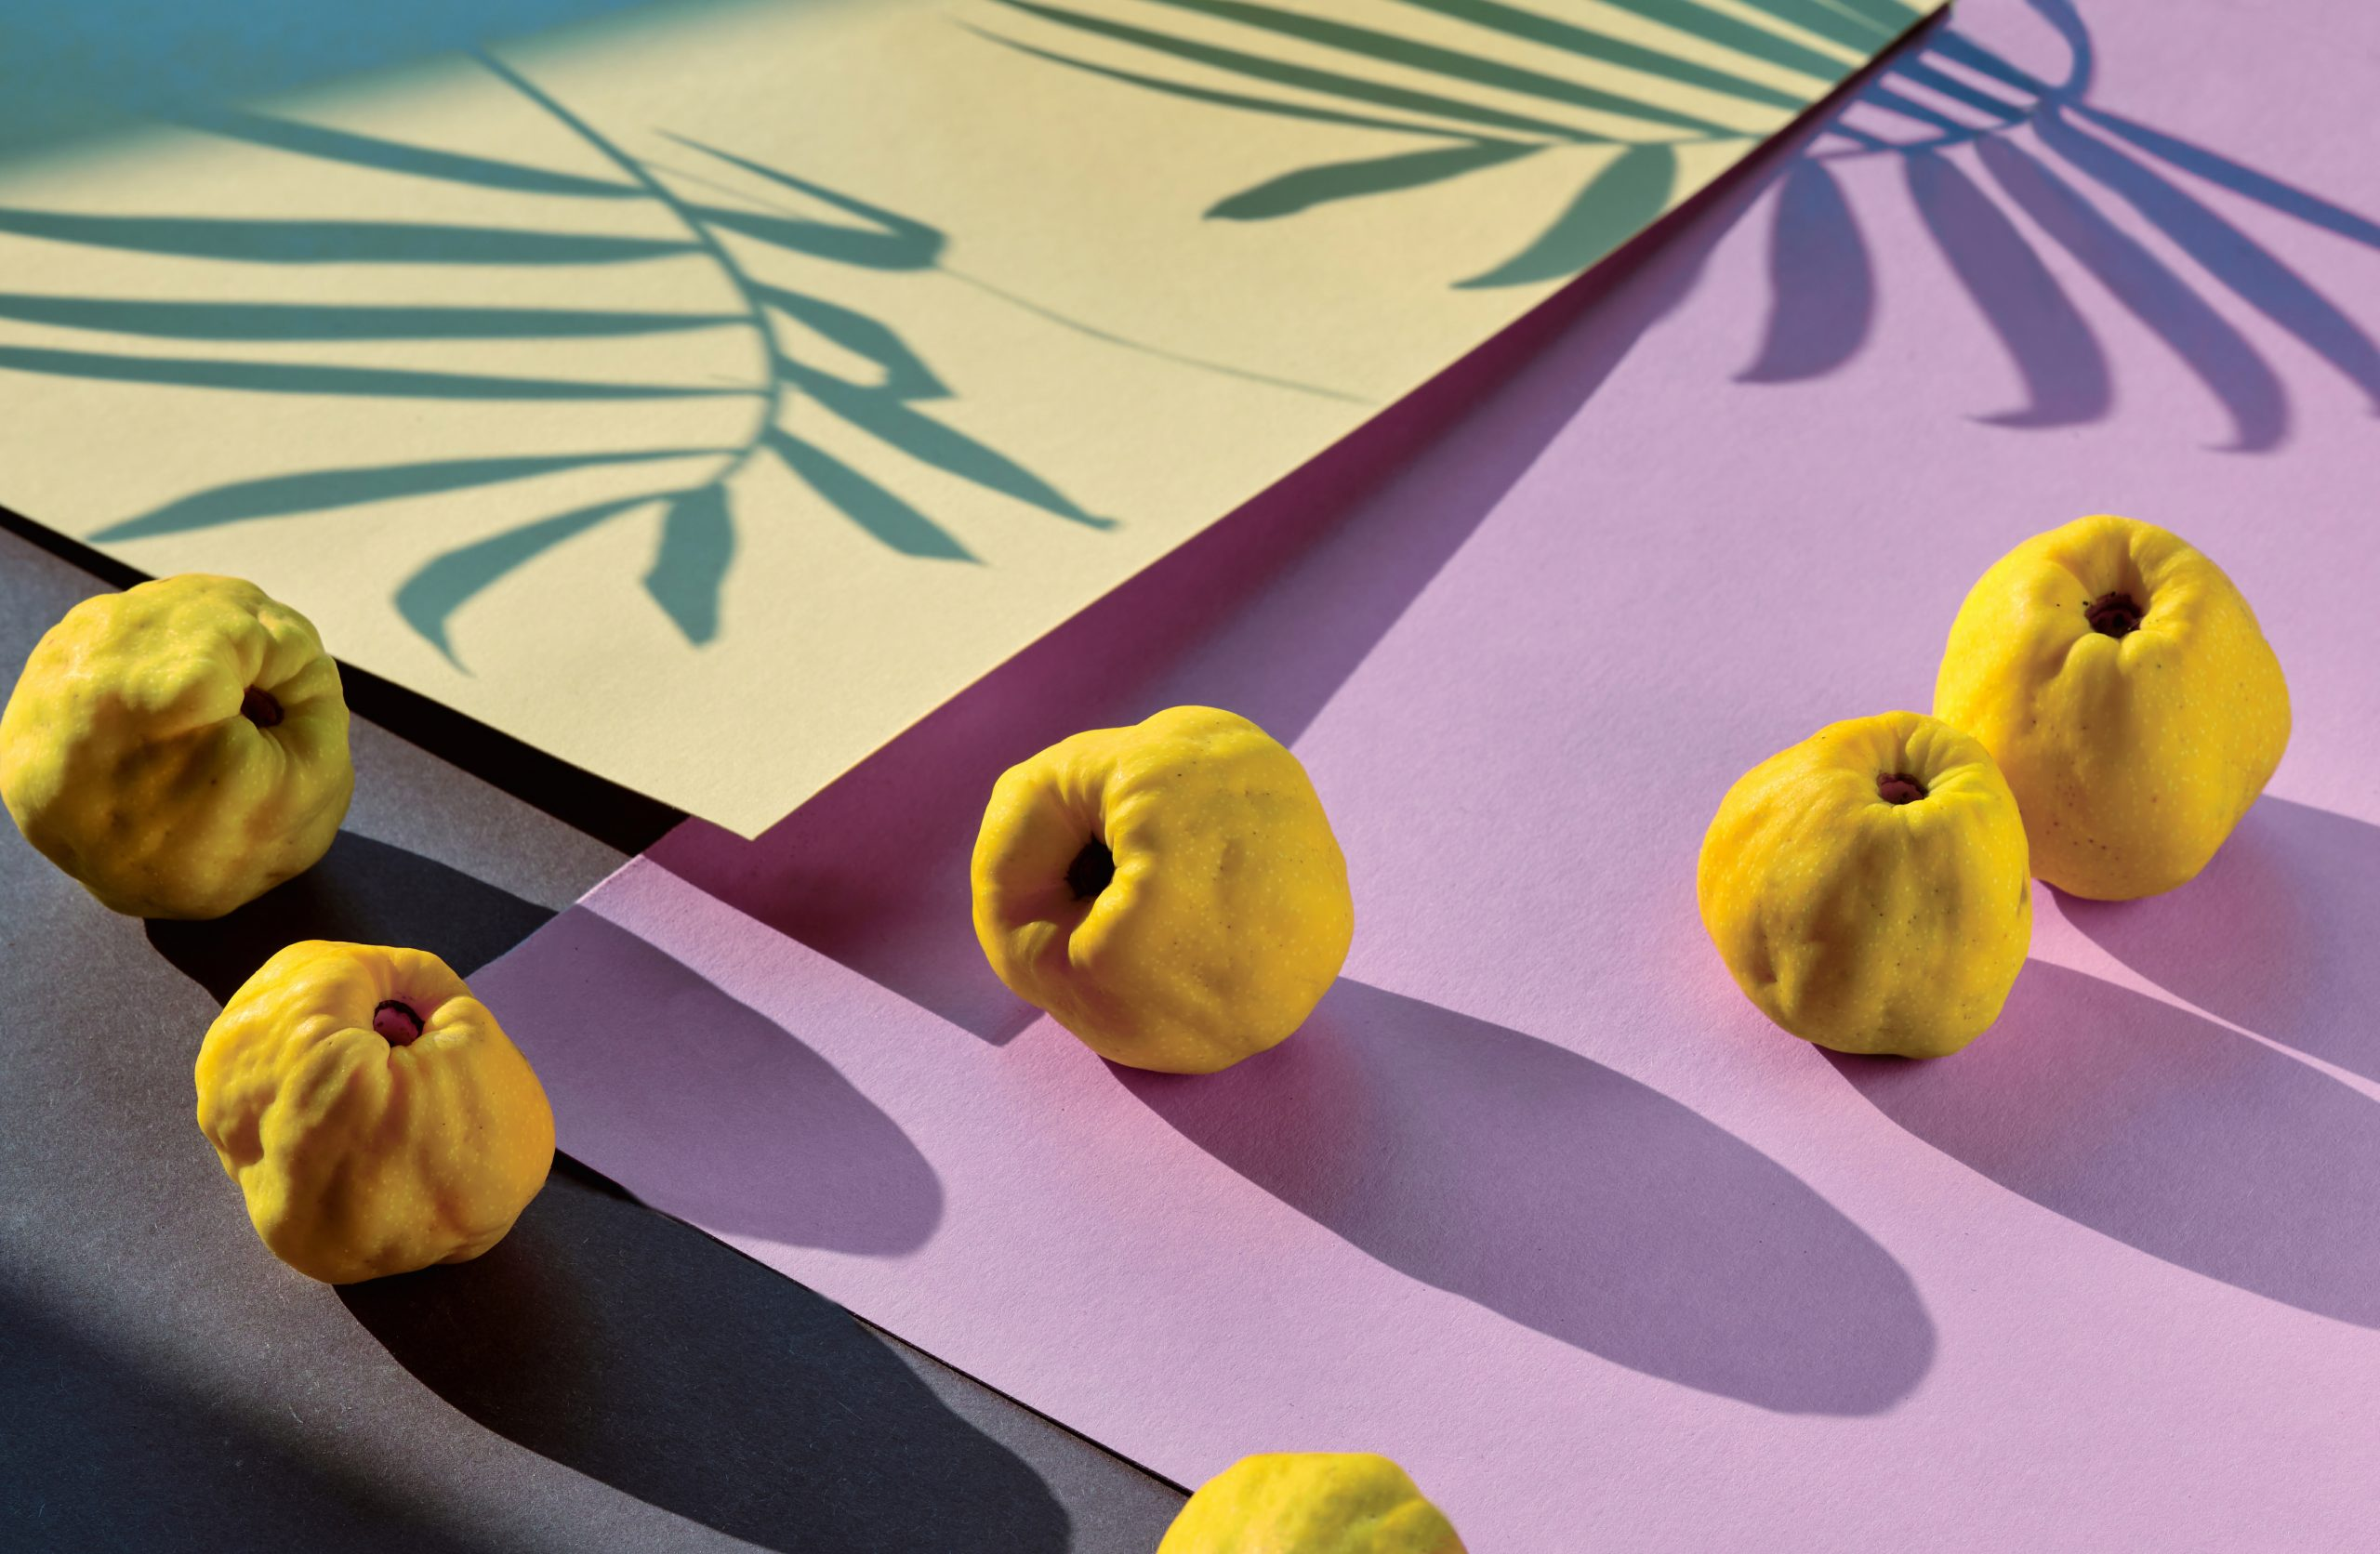 Close-up on ripe sweet Japanese quince fruits on pink and purple geometric layered paper. Long shadows from the fruits and palm leaves. Vibrant yellow, pink and purple Autumn color palette.